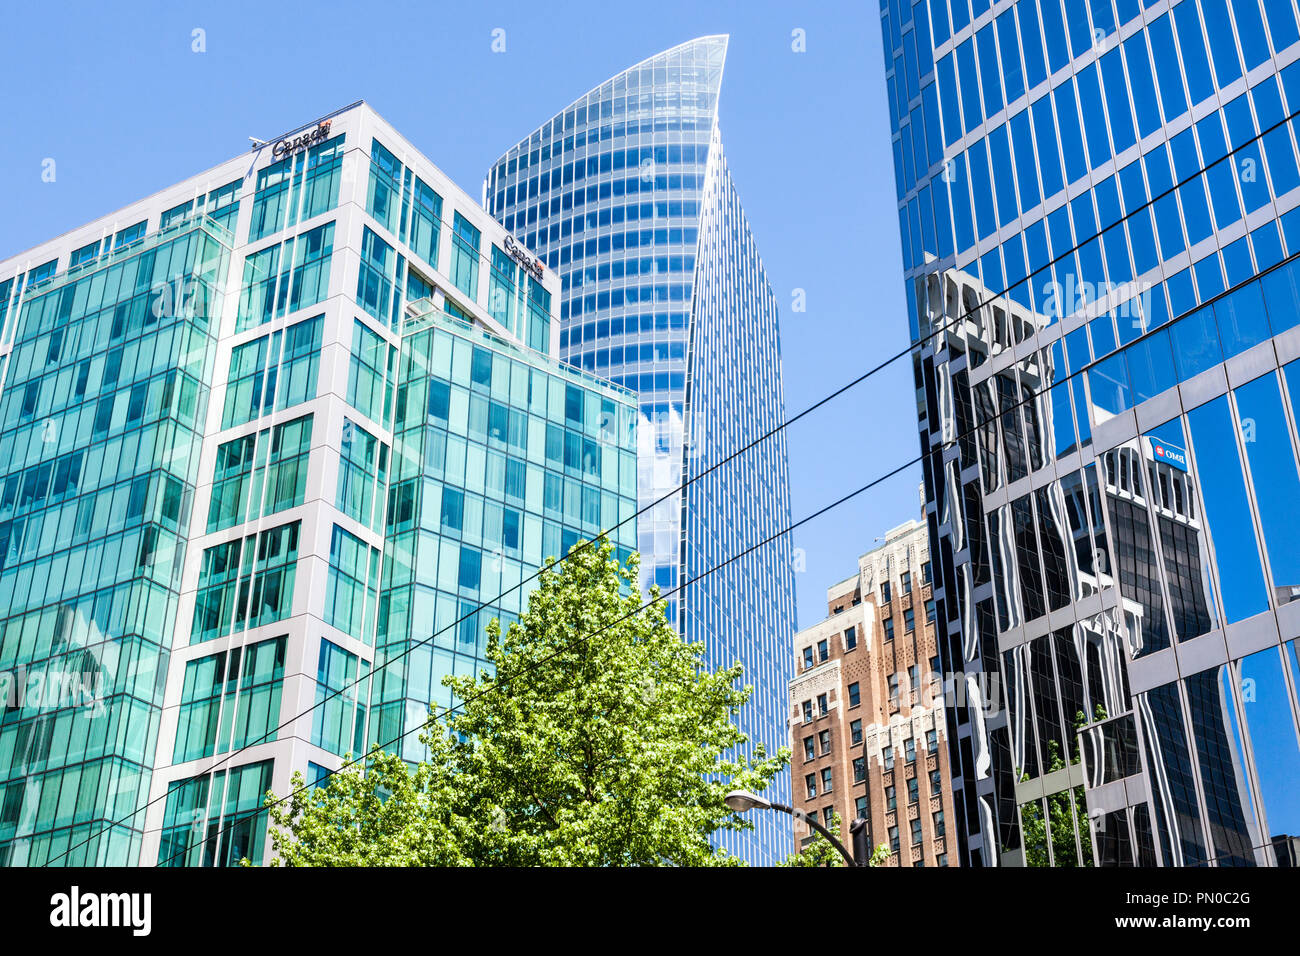 High rise modern architecture in Burrard Street in downtown Vancouver, British Columbia, Canada - Stock Image